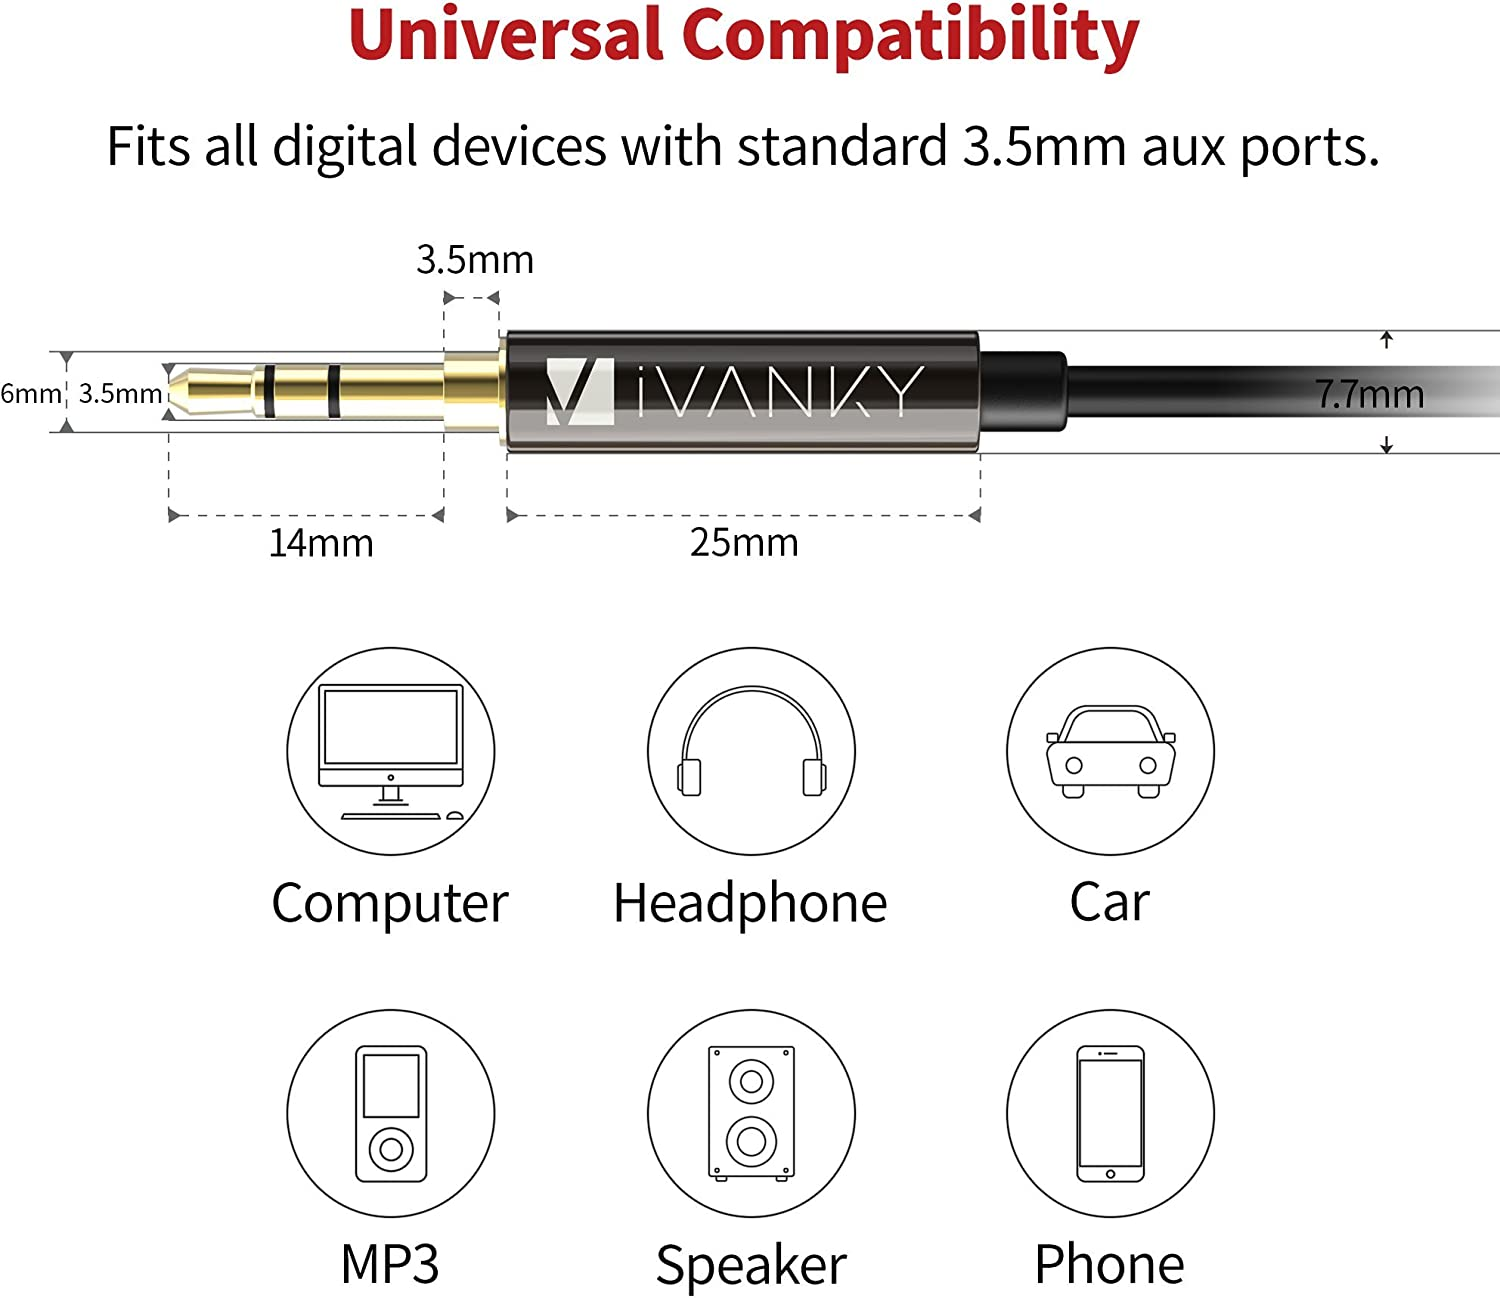 iVANKY Aux Cable 4ft [Hi-Fi Sound, 2-Pack], 3.5mm Auxiliary Audio Cable Input Adapter, Male to Male Aux Cord for Car Stereo, iPhone, iPod, iPad, Headphone Lead for Sony, Beats, etc - Black: Electronics